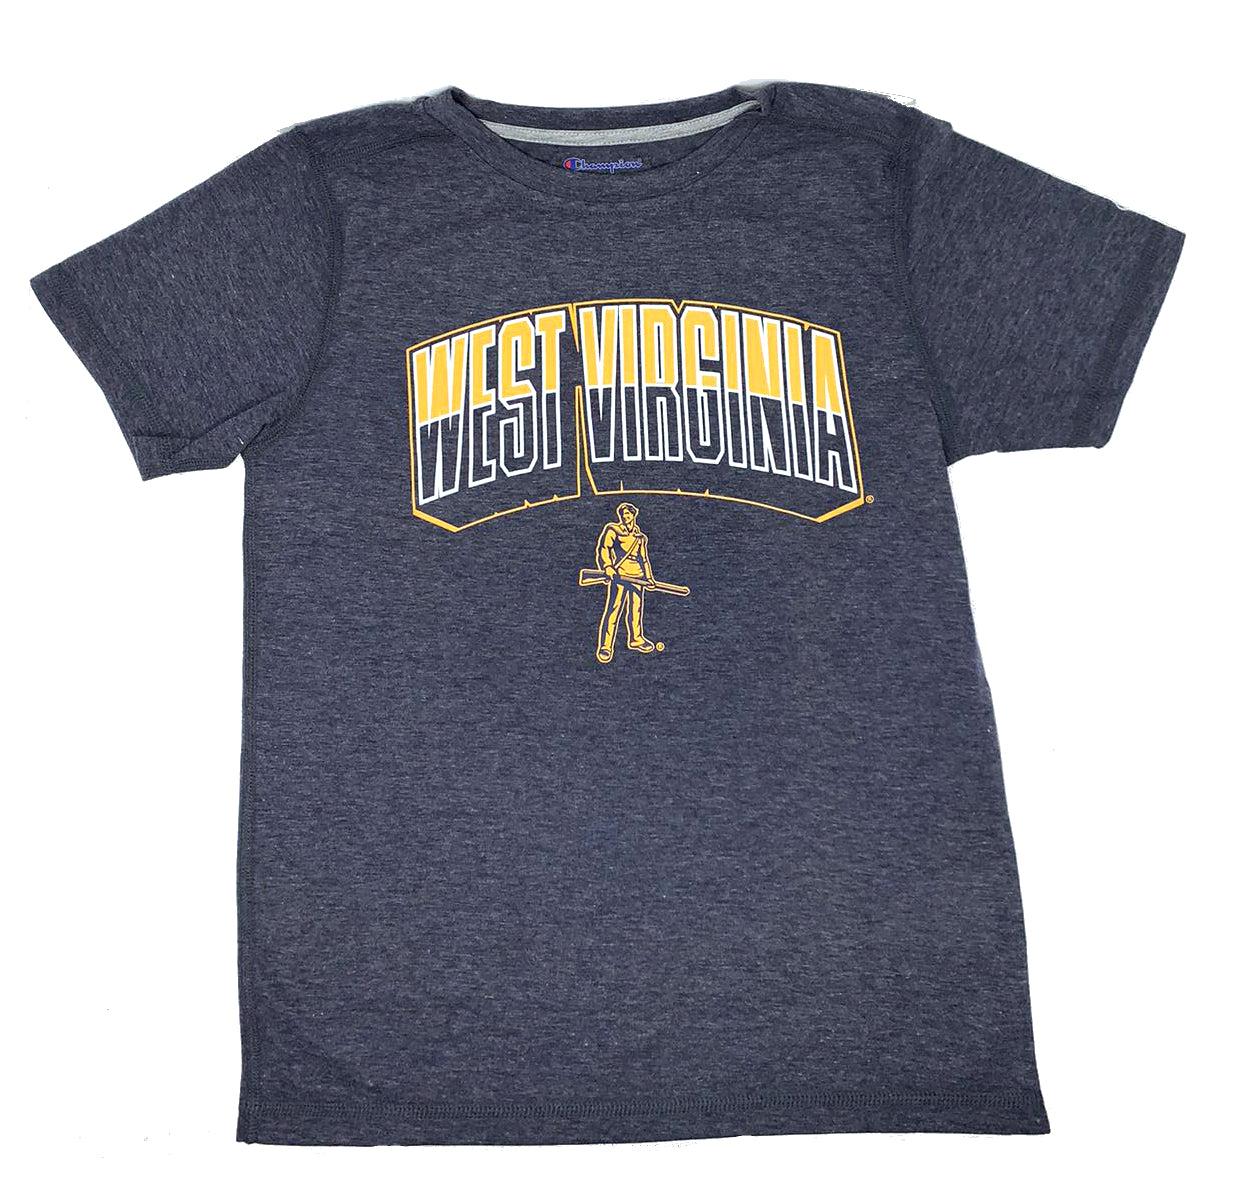 West Virginia Mountaineers Youth T-Shirt